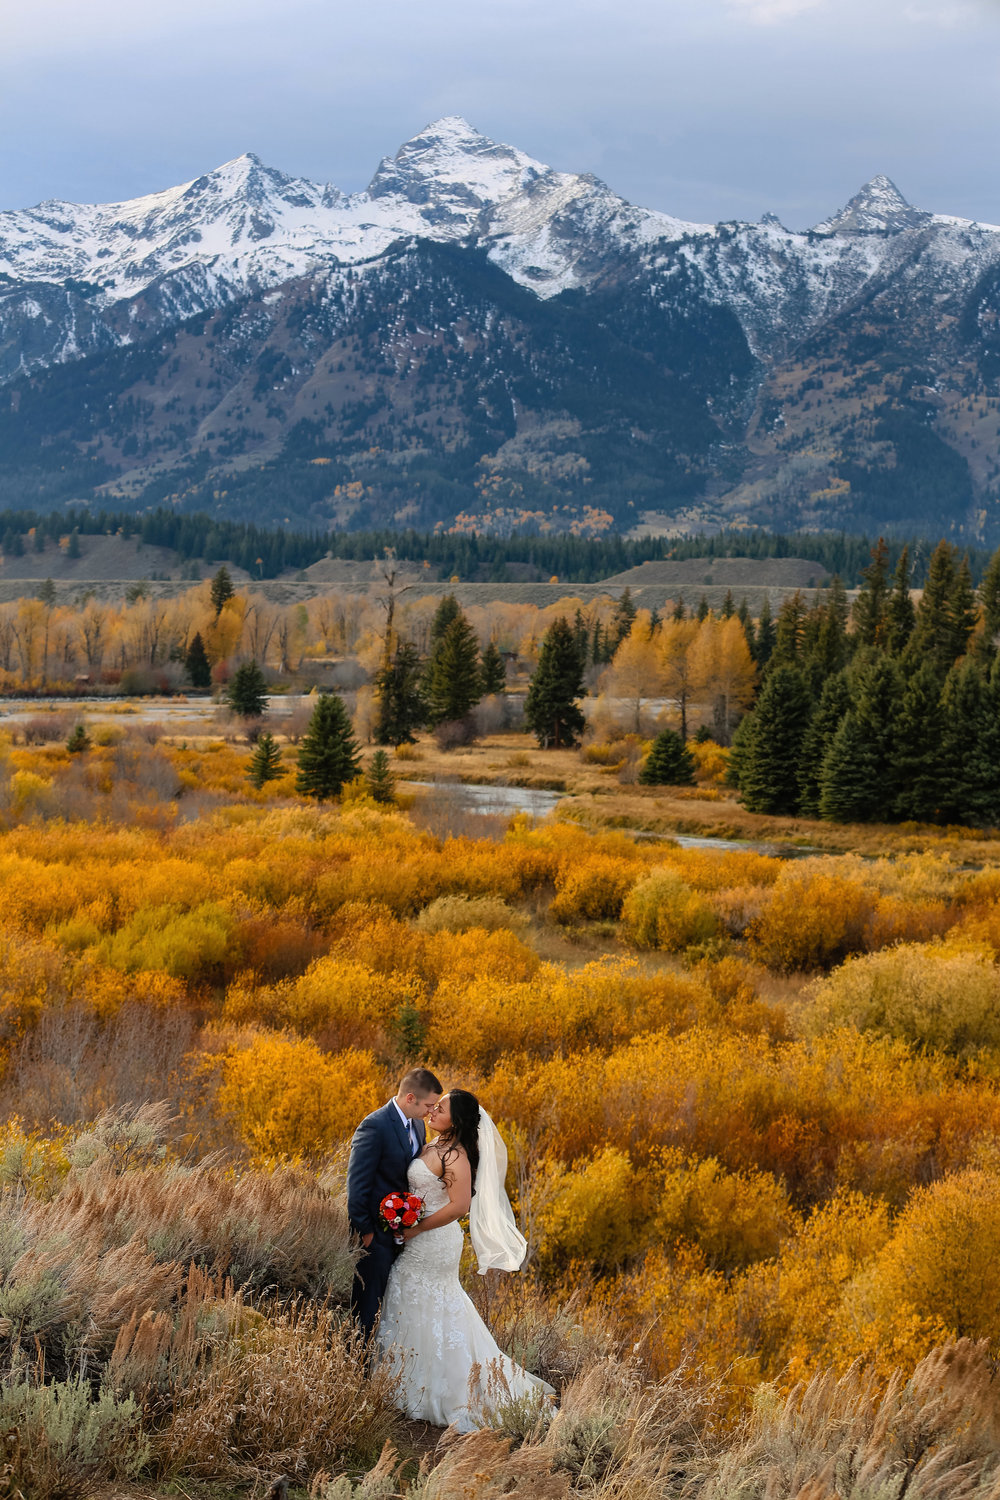 GRAND TETON NATIONAL PARK, NATIONAL PARK WEDDING, WYOMING WEDDING, GRAND WEDDINGS, AUTUMN WEDDINGS, JACKSON HOLE